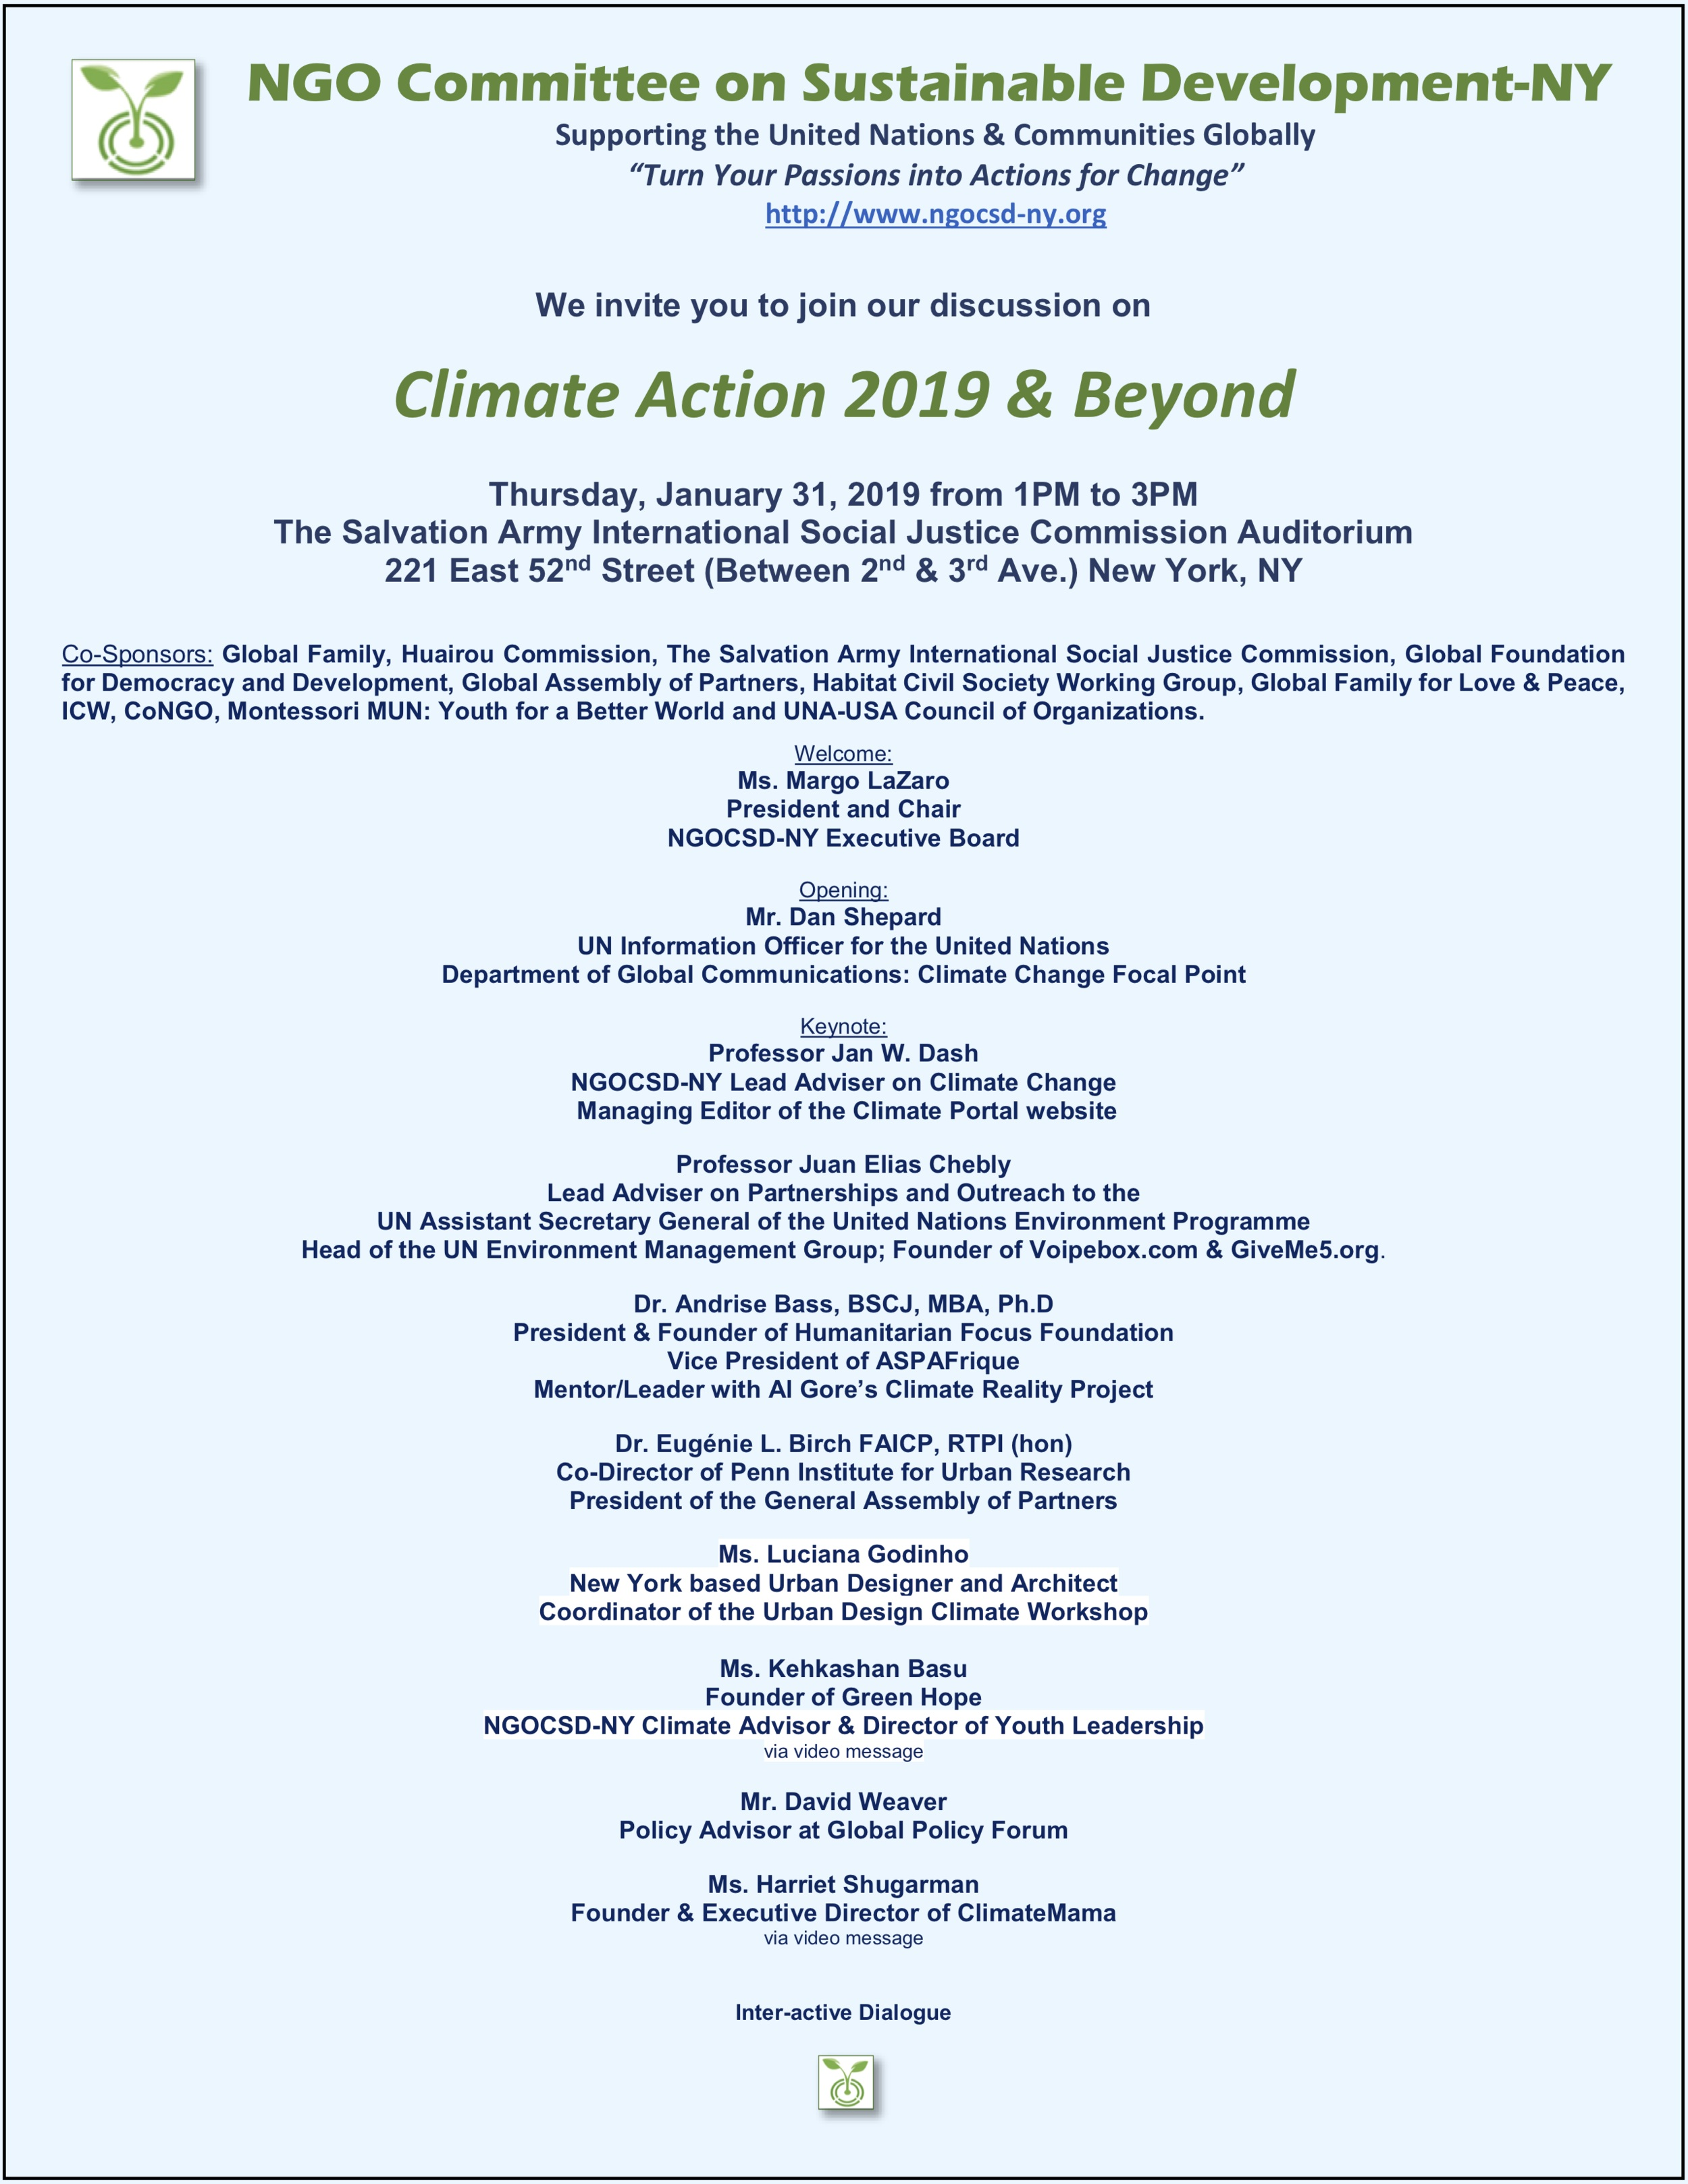 NGOCSD-NY+1-31-19+Climate+Action+2019+%26+Beyond+Invitation+A3.jpg